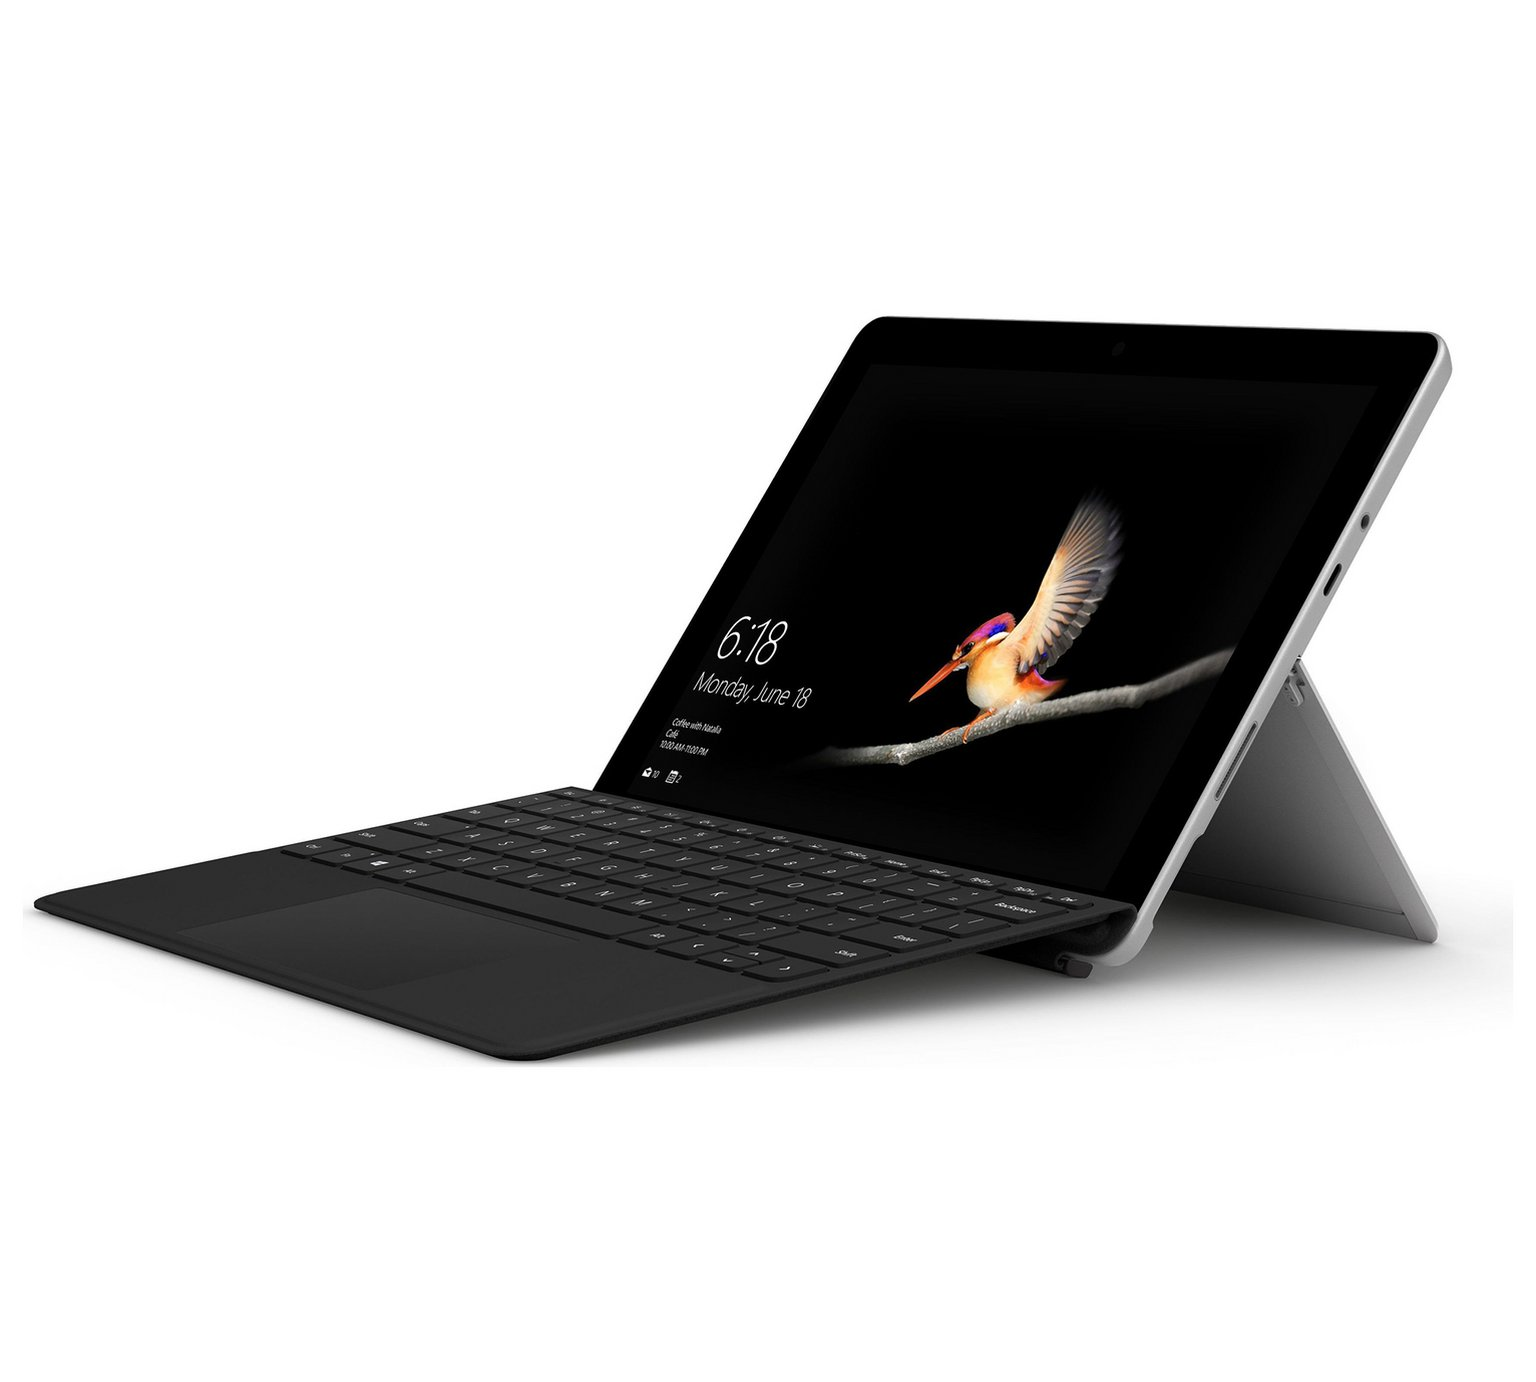 Microsoft Surface Go 8GB 128GB 2-in-1 Laptop with Type Cover